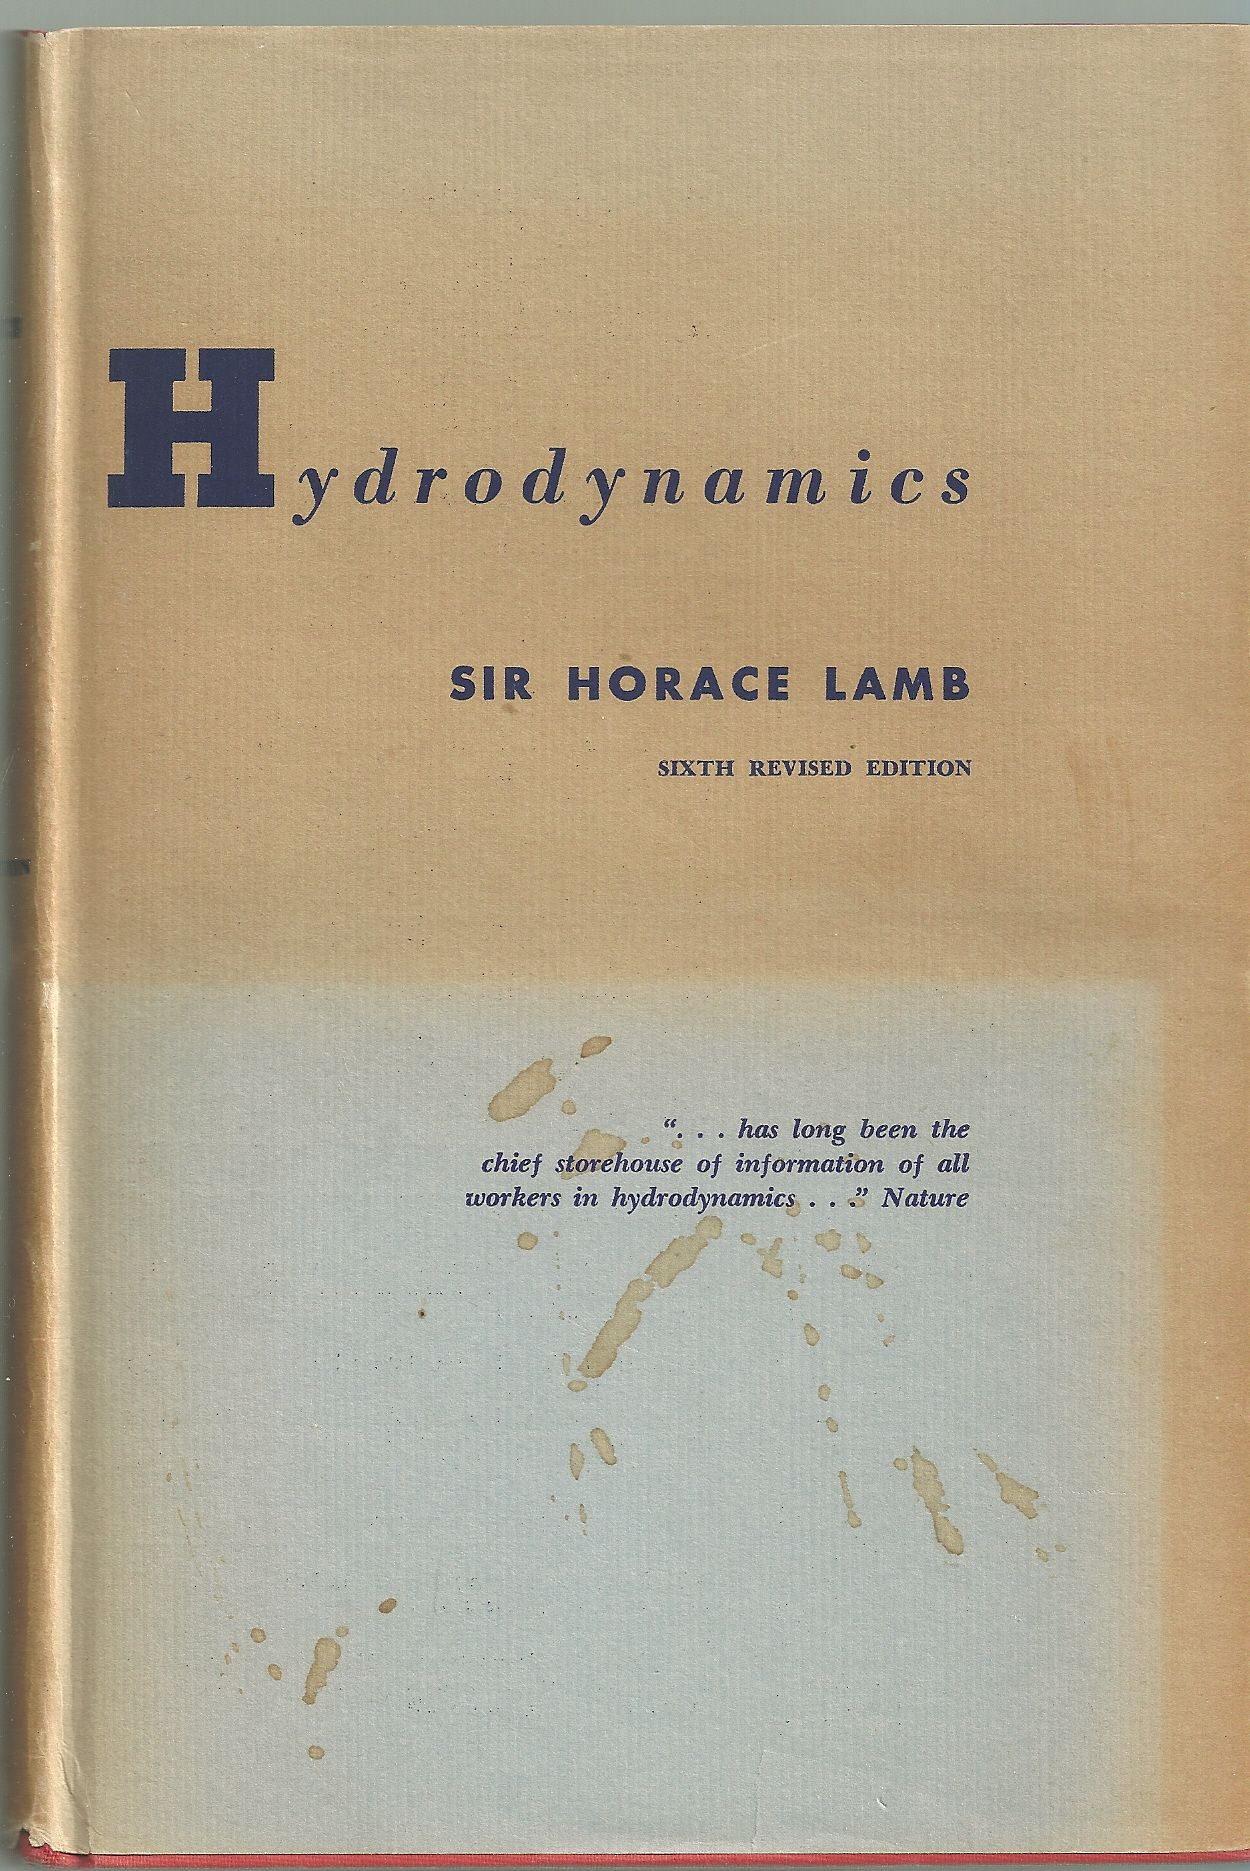 Hydrodynamics. First American Edition.